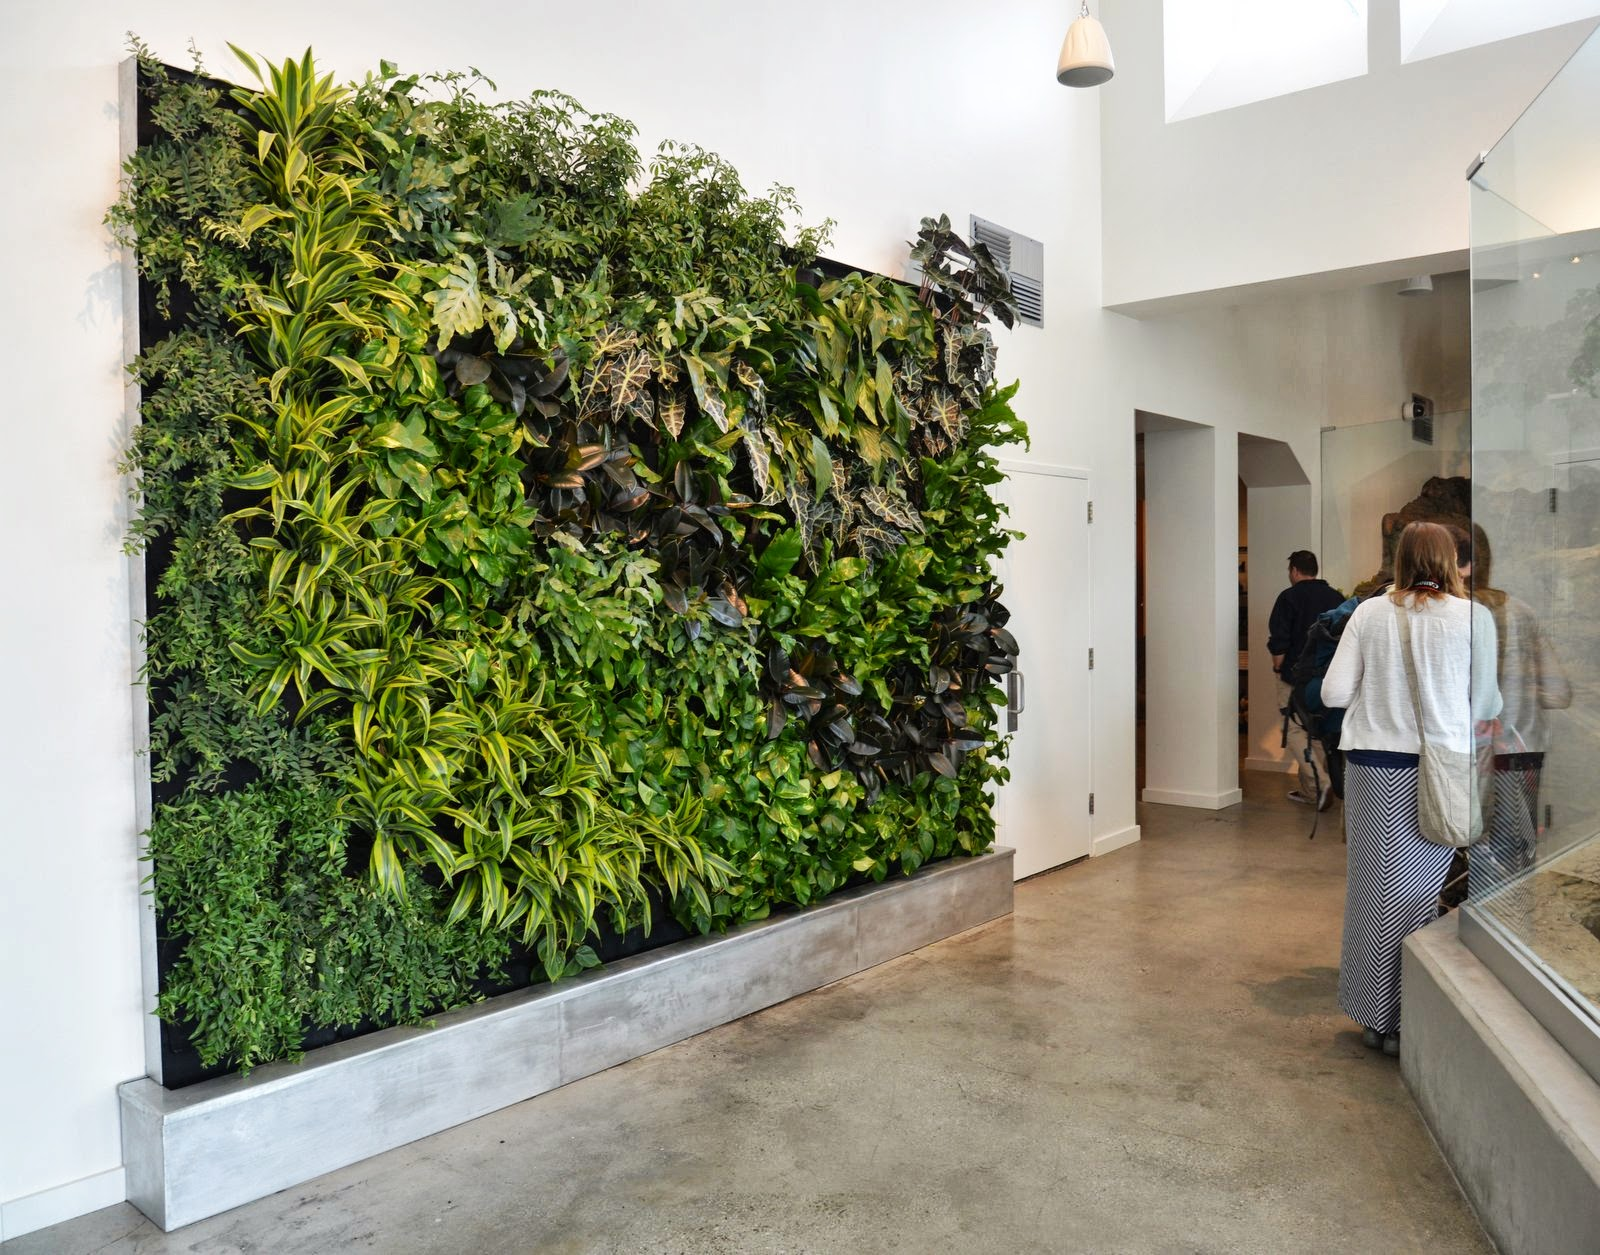 Plants on walls vertical garden systems Green walls vertical planting systems